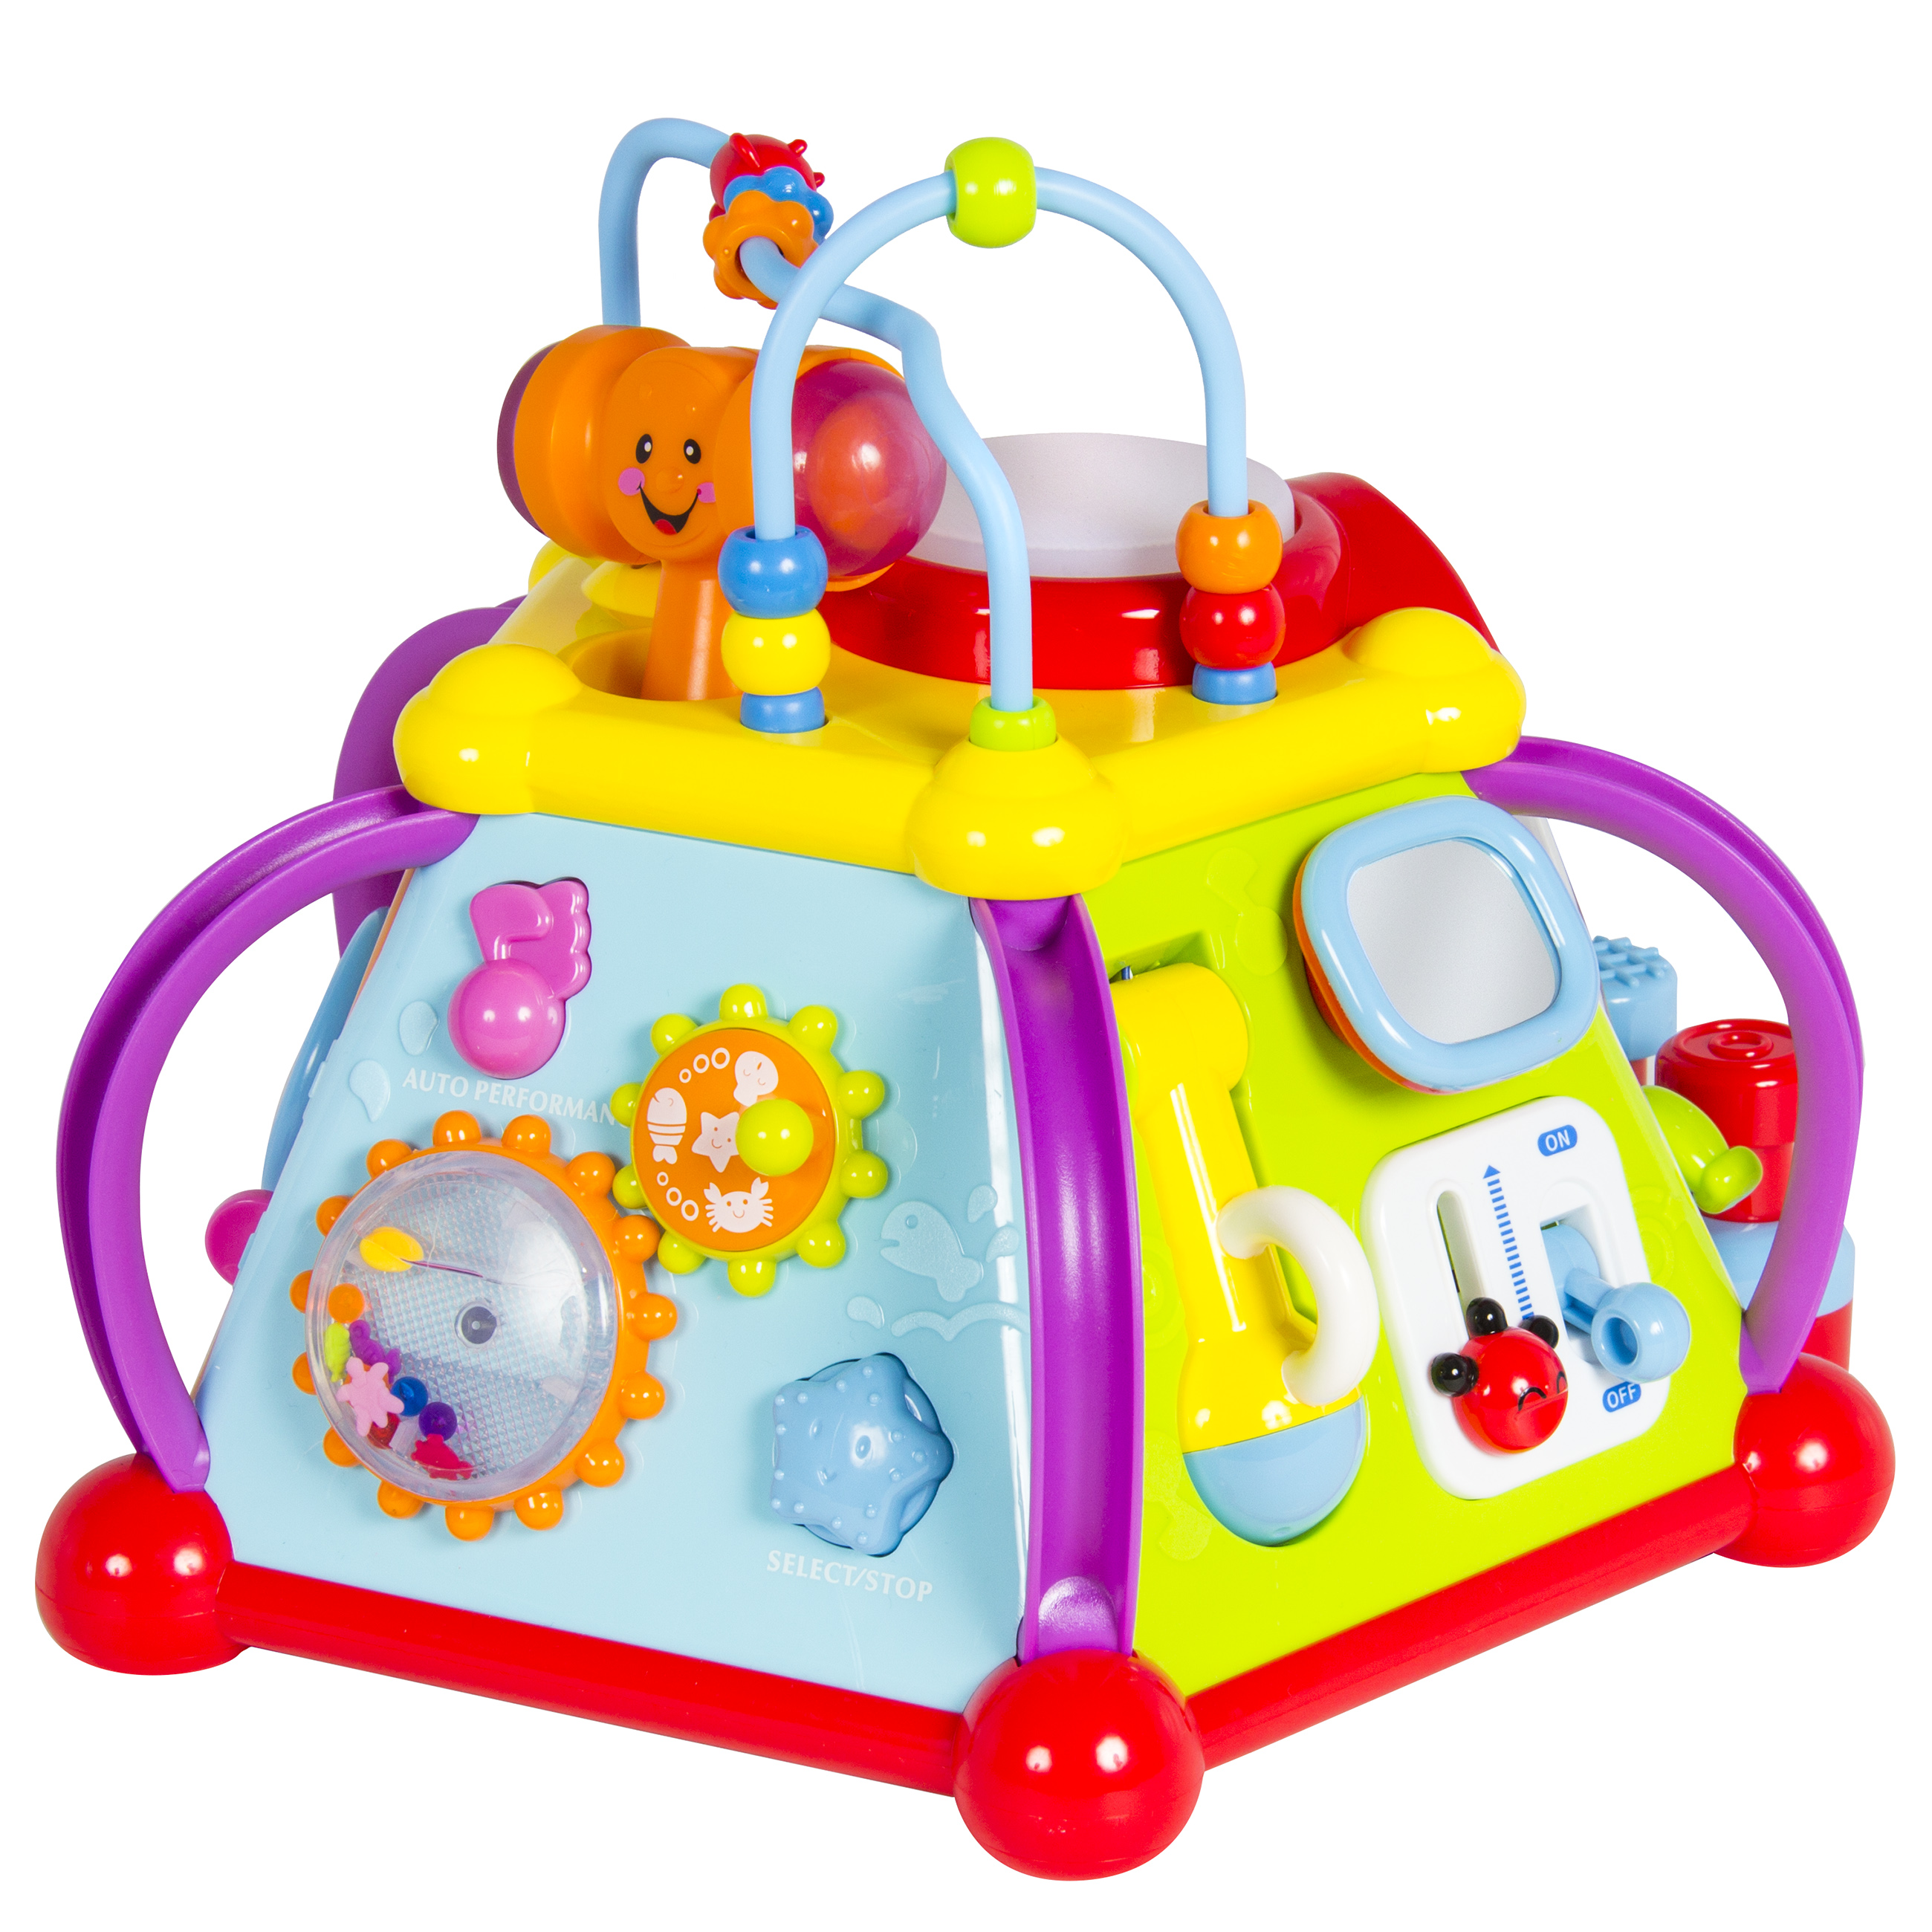 6210f7227195 Best Choice Products Kids Toddlers Musical Activity Cube Play Toy w  15  Functions